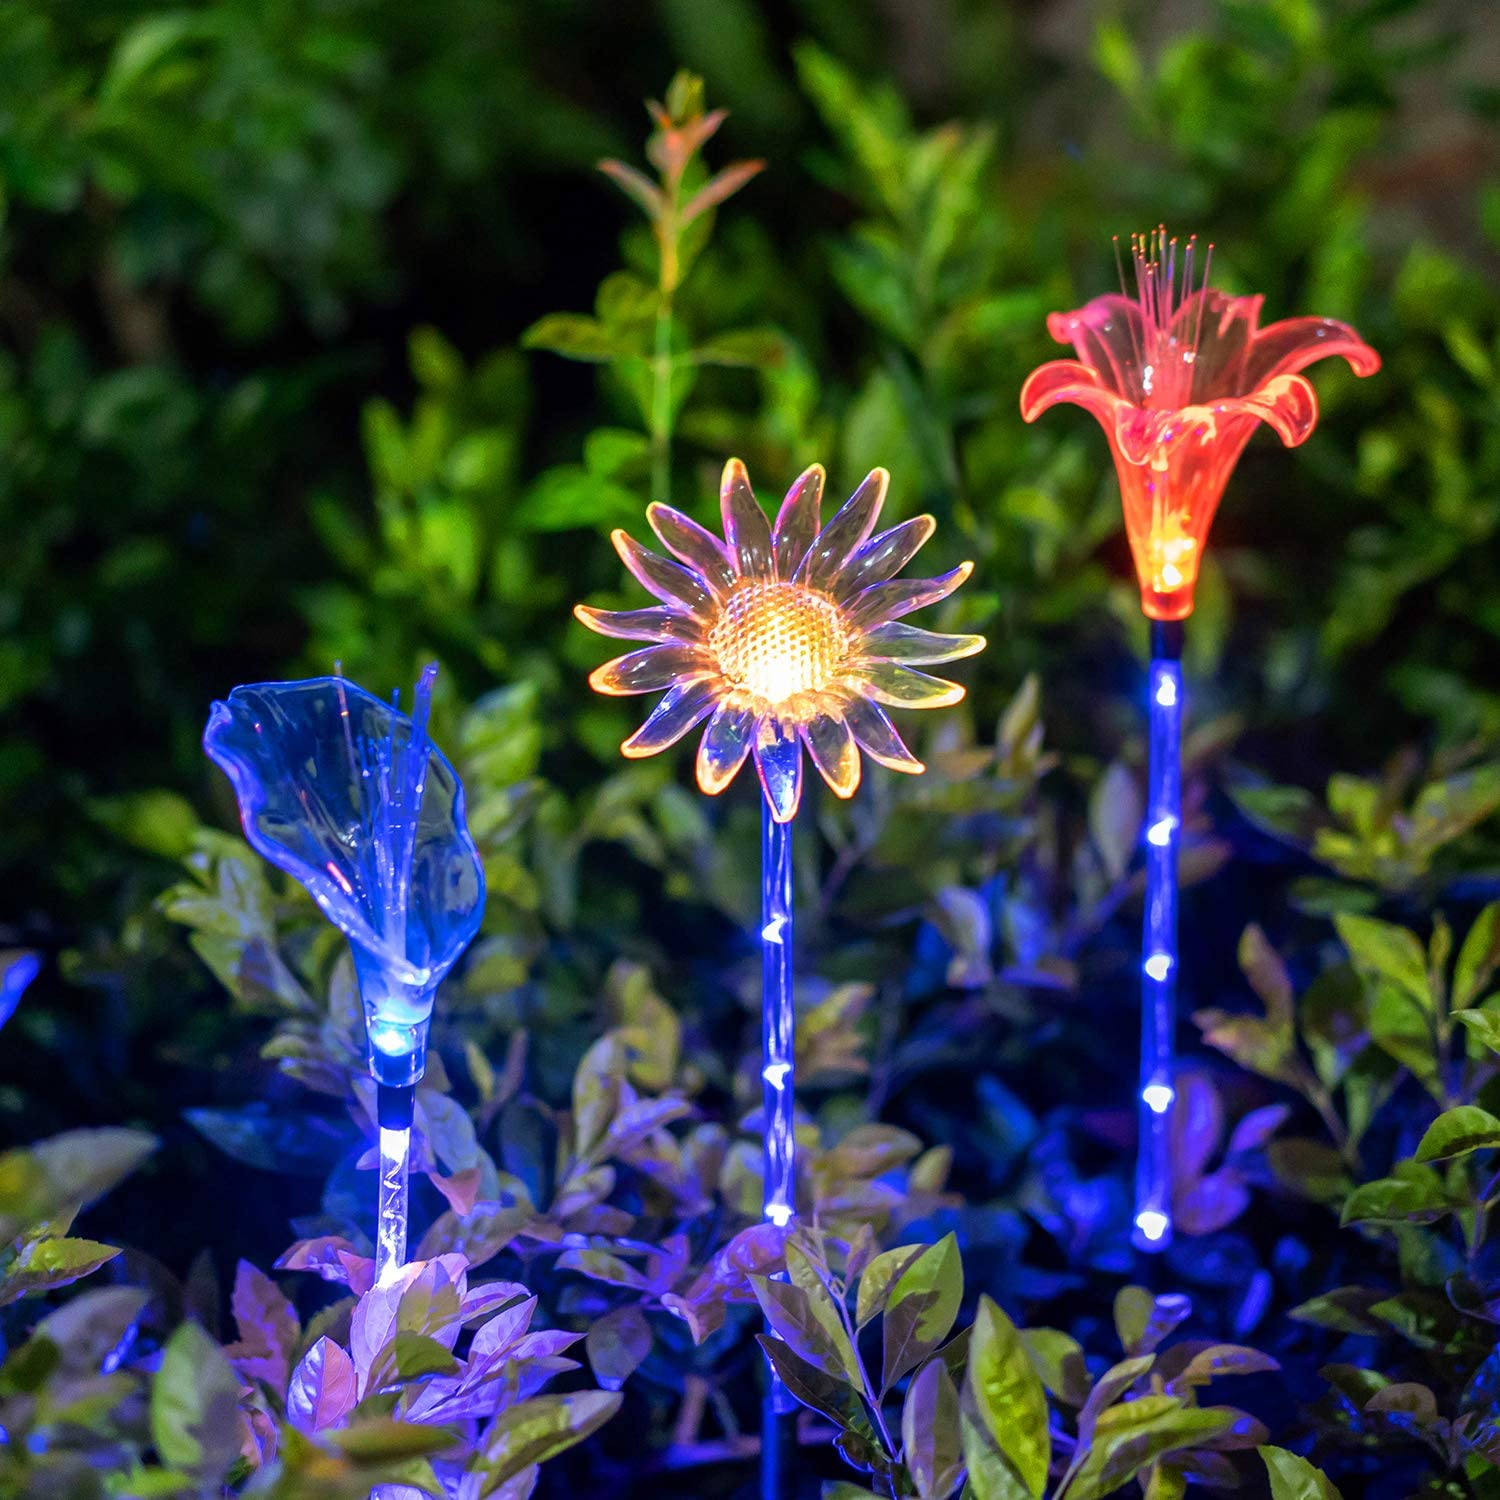 Philadelphia Mall Solar Popular products Garden Stake Lights - Set Decorative Chan of 3 Multi-Color